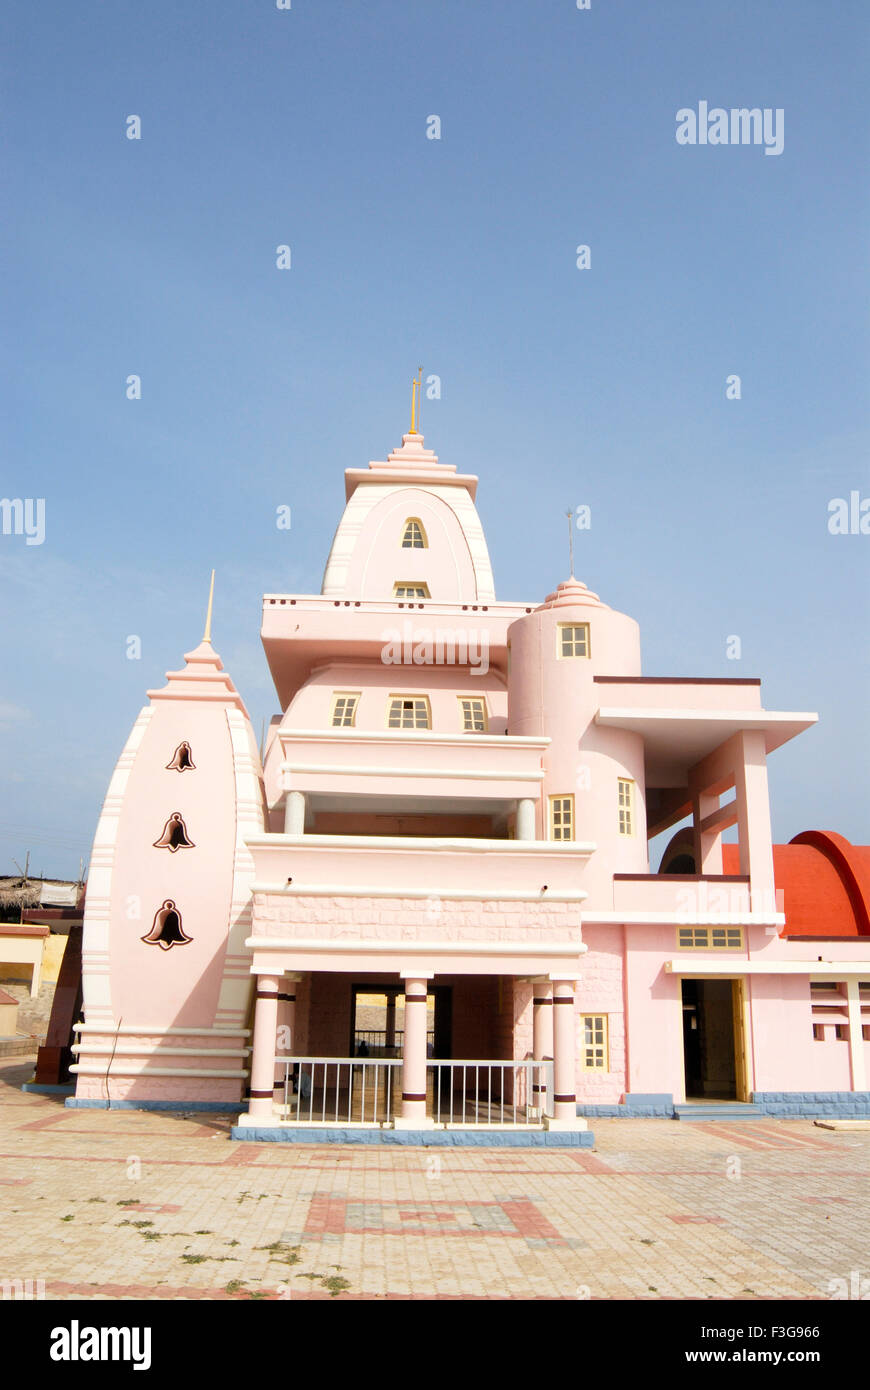 Gandhi Memorial established in 1956 (height 79 feet); Kanyakumari ; Tamil Nadu ; India - Stock Image